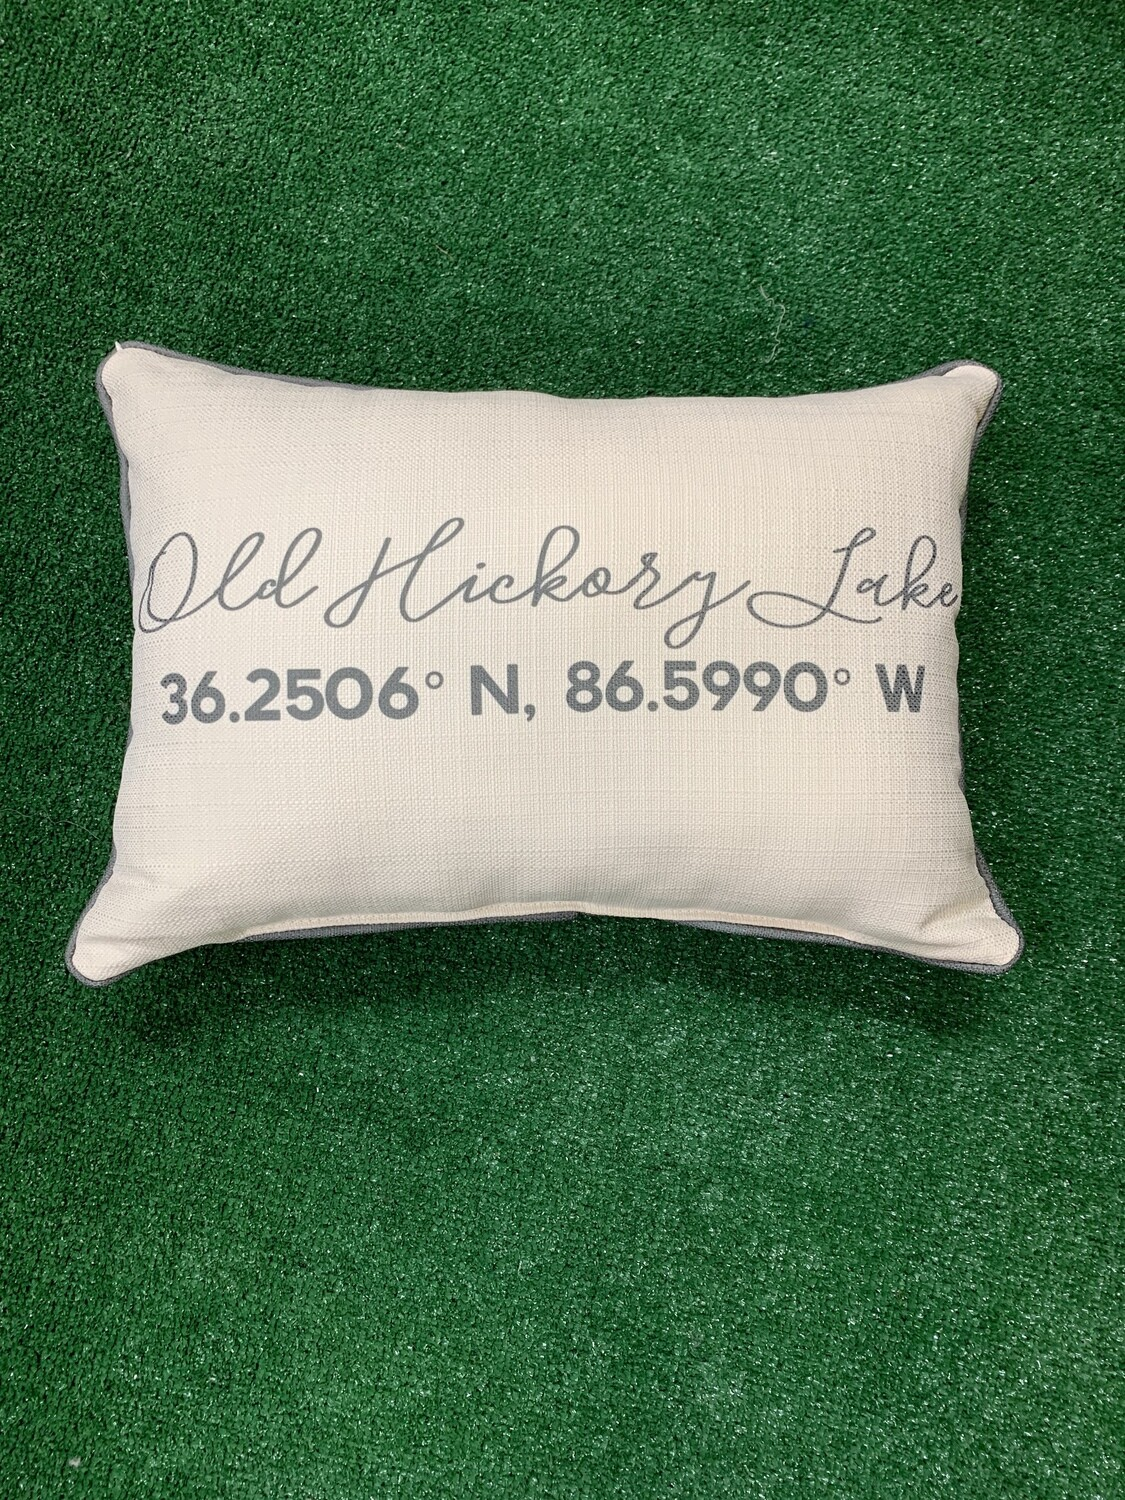 Old Hickory Lake Pillow